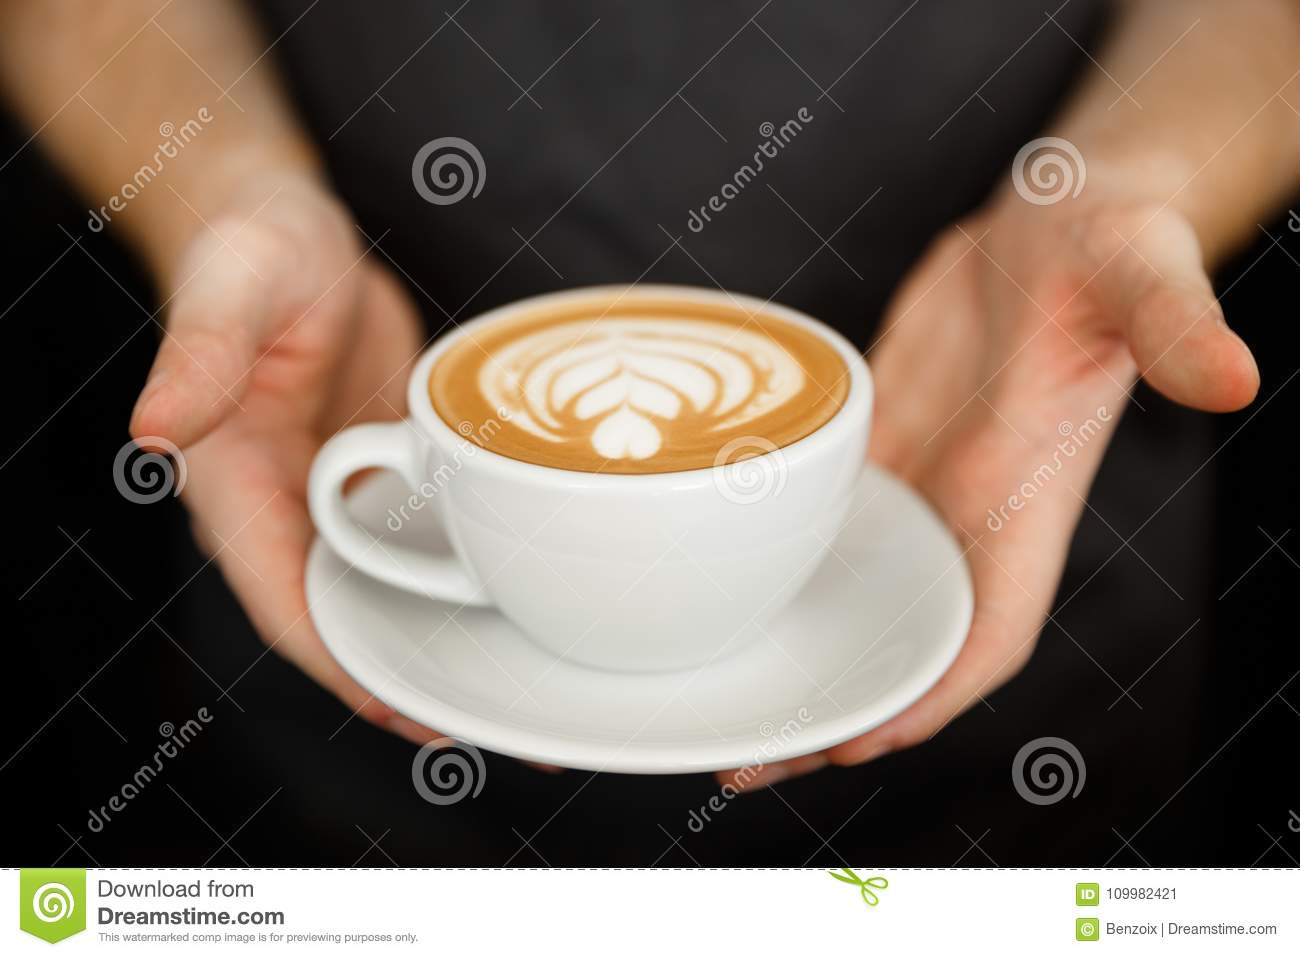 Coffee Business Concept - Cropped Close up of female serving coffee with latte art while standing in coffee shop. Focus